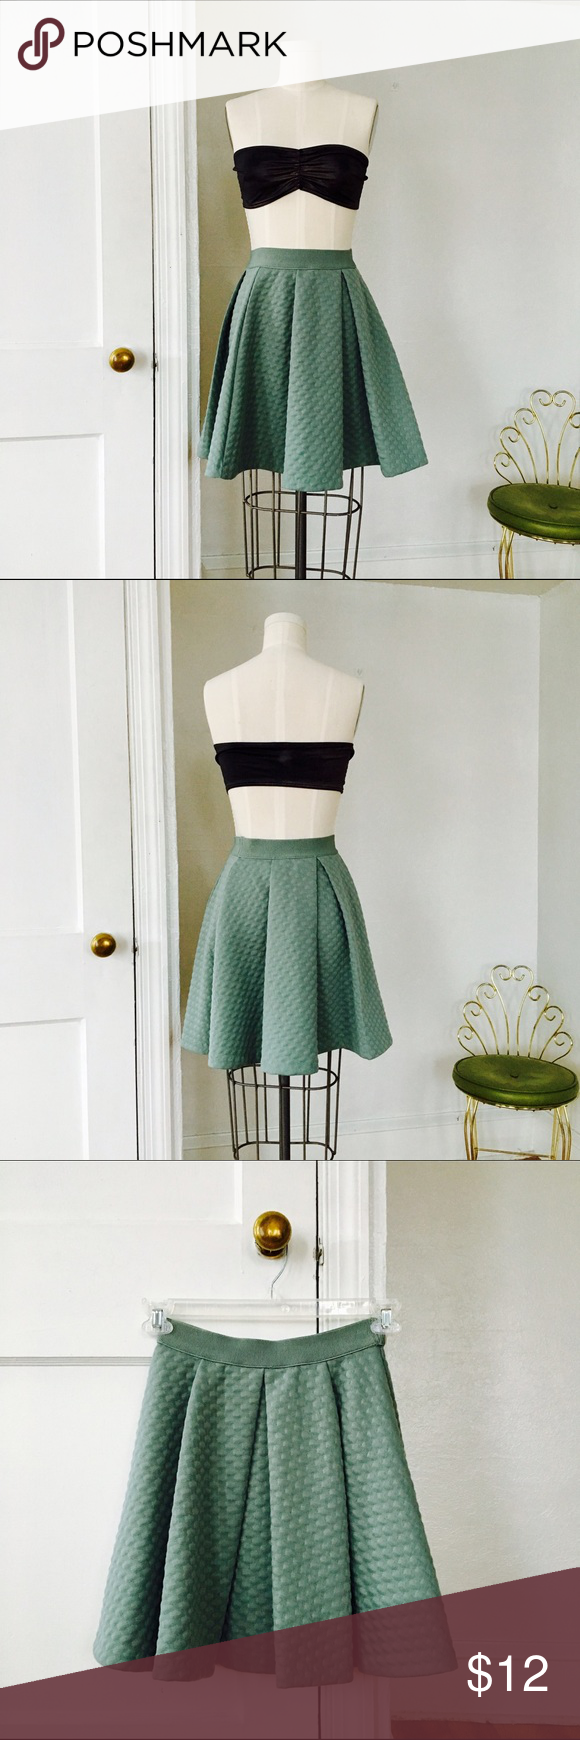 Textured Full Skater Skirt in Kitsch Mint A very very darling skirt.  I like how full the folds make it and how thick and sturdy the fabric is.  In like new condition.  Wearing this will put you in the Raddest mood. H&M Skirts Circle & Skater